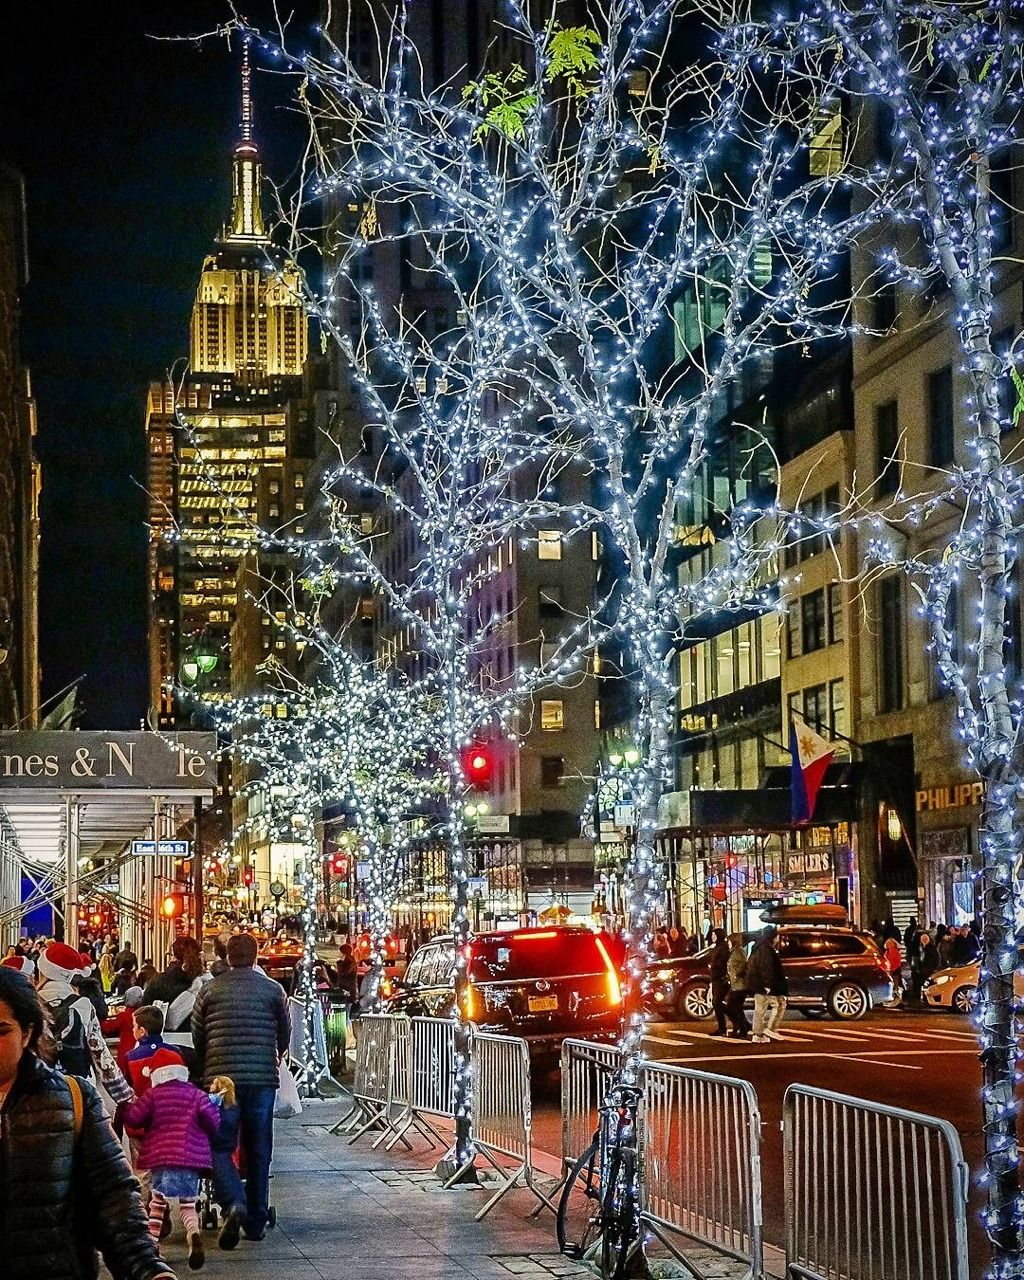 Christmas Lights In New York 2019 Christmas Lights by chandleLee in 2019 | U.S.A.. NEW YORK | New